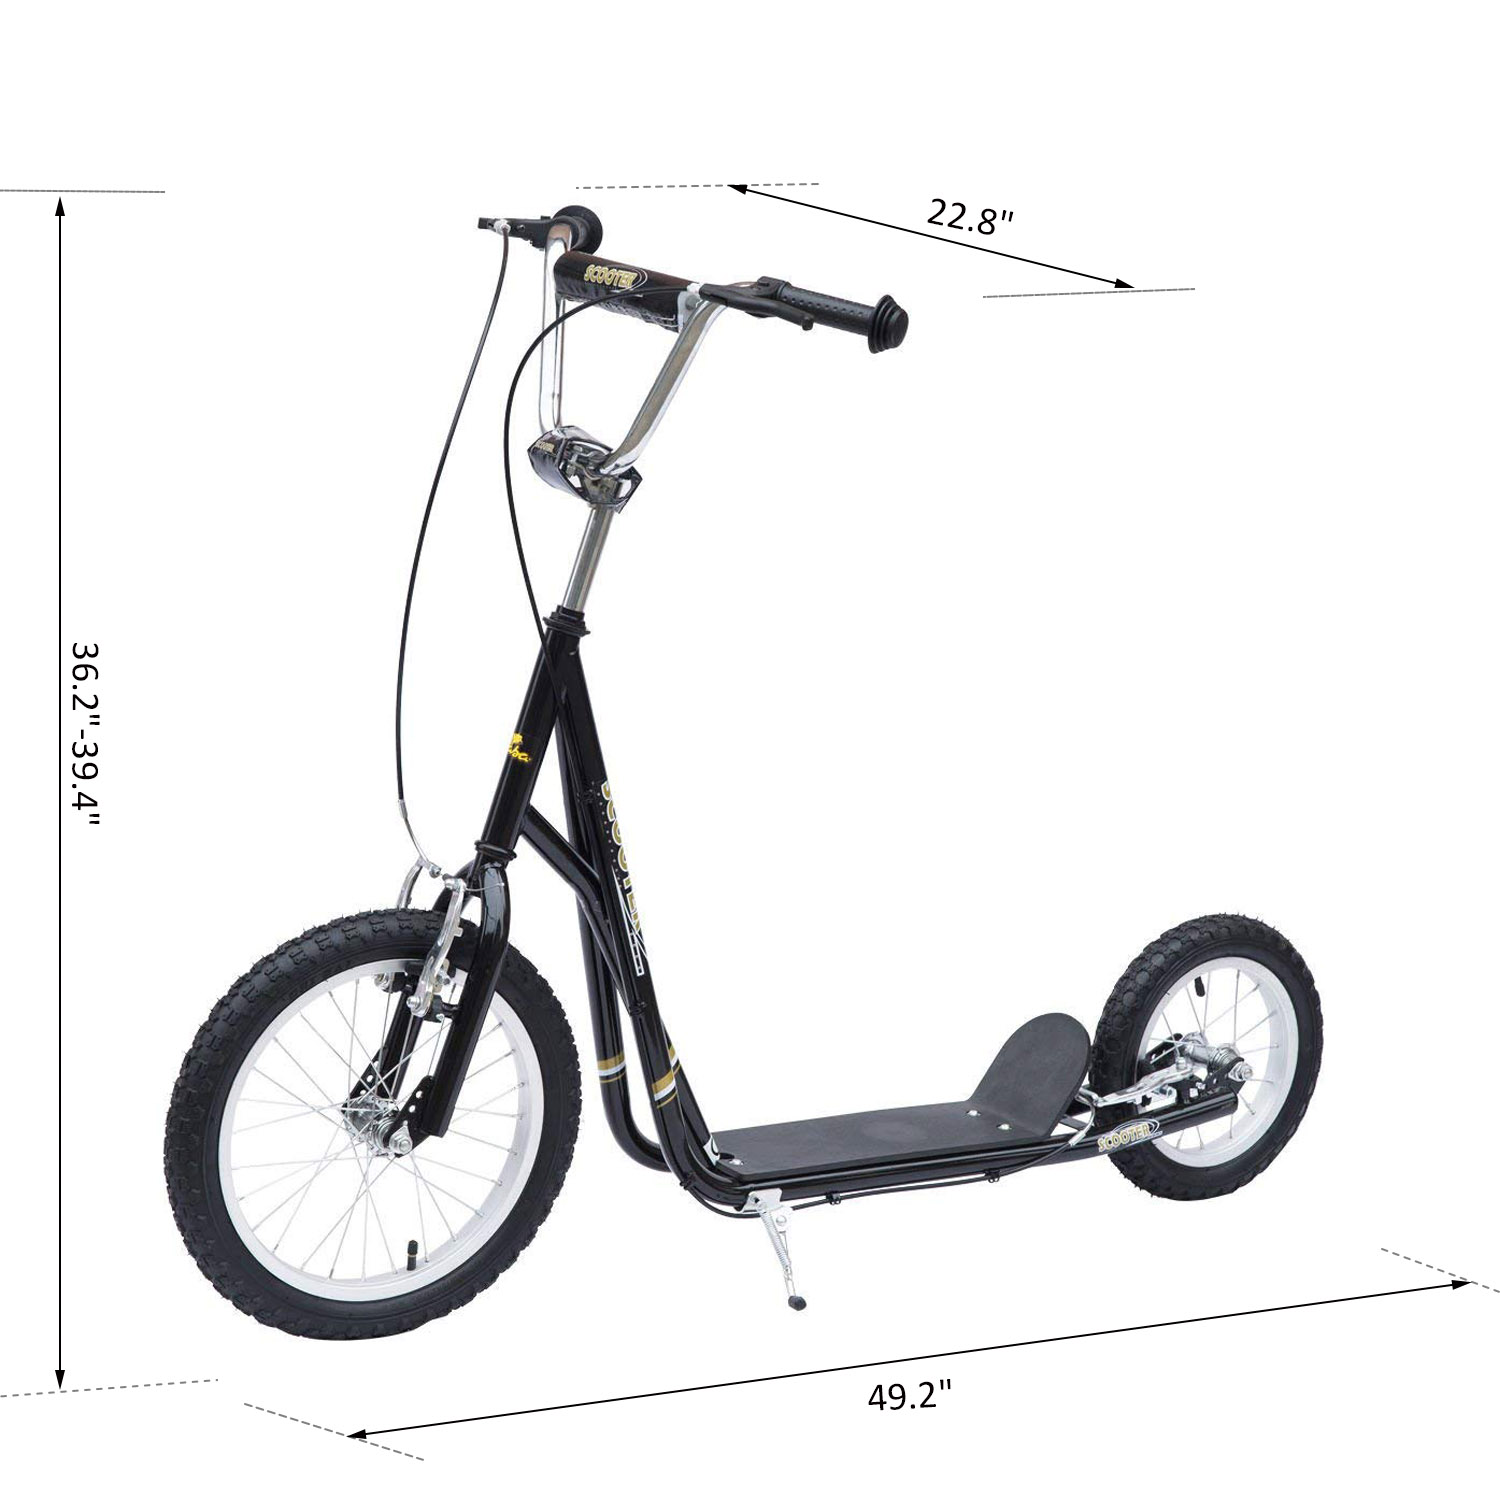 Adjustable-Teen-Kick-Scooter-Kids-Ride-On-Stunt-Street-Bike-16-034-Tire thumbnail 3